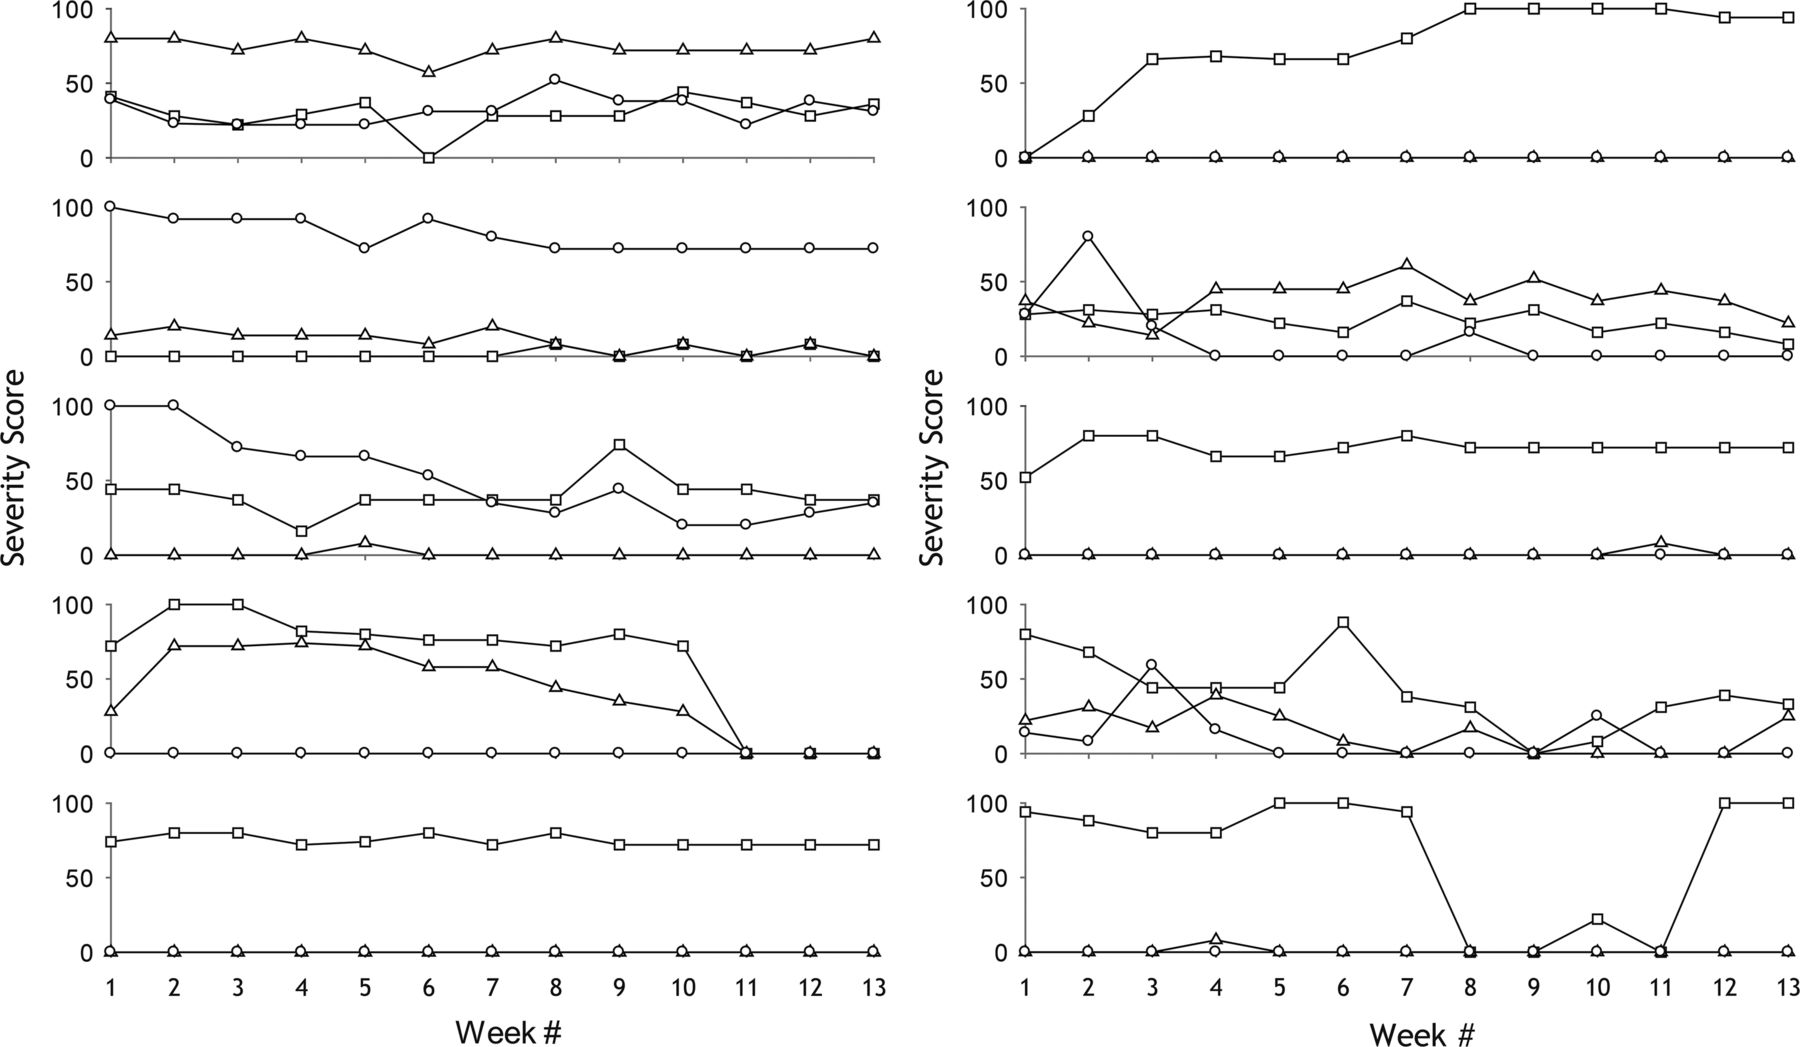 development and validation of a new method for the registration of overuse injuries in sports